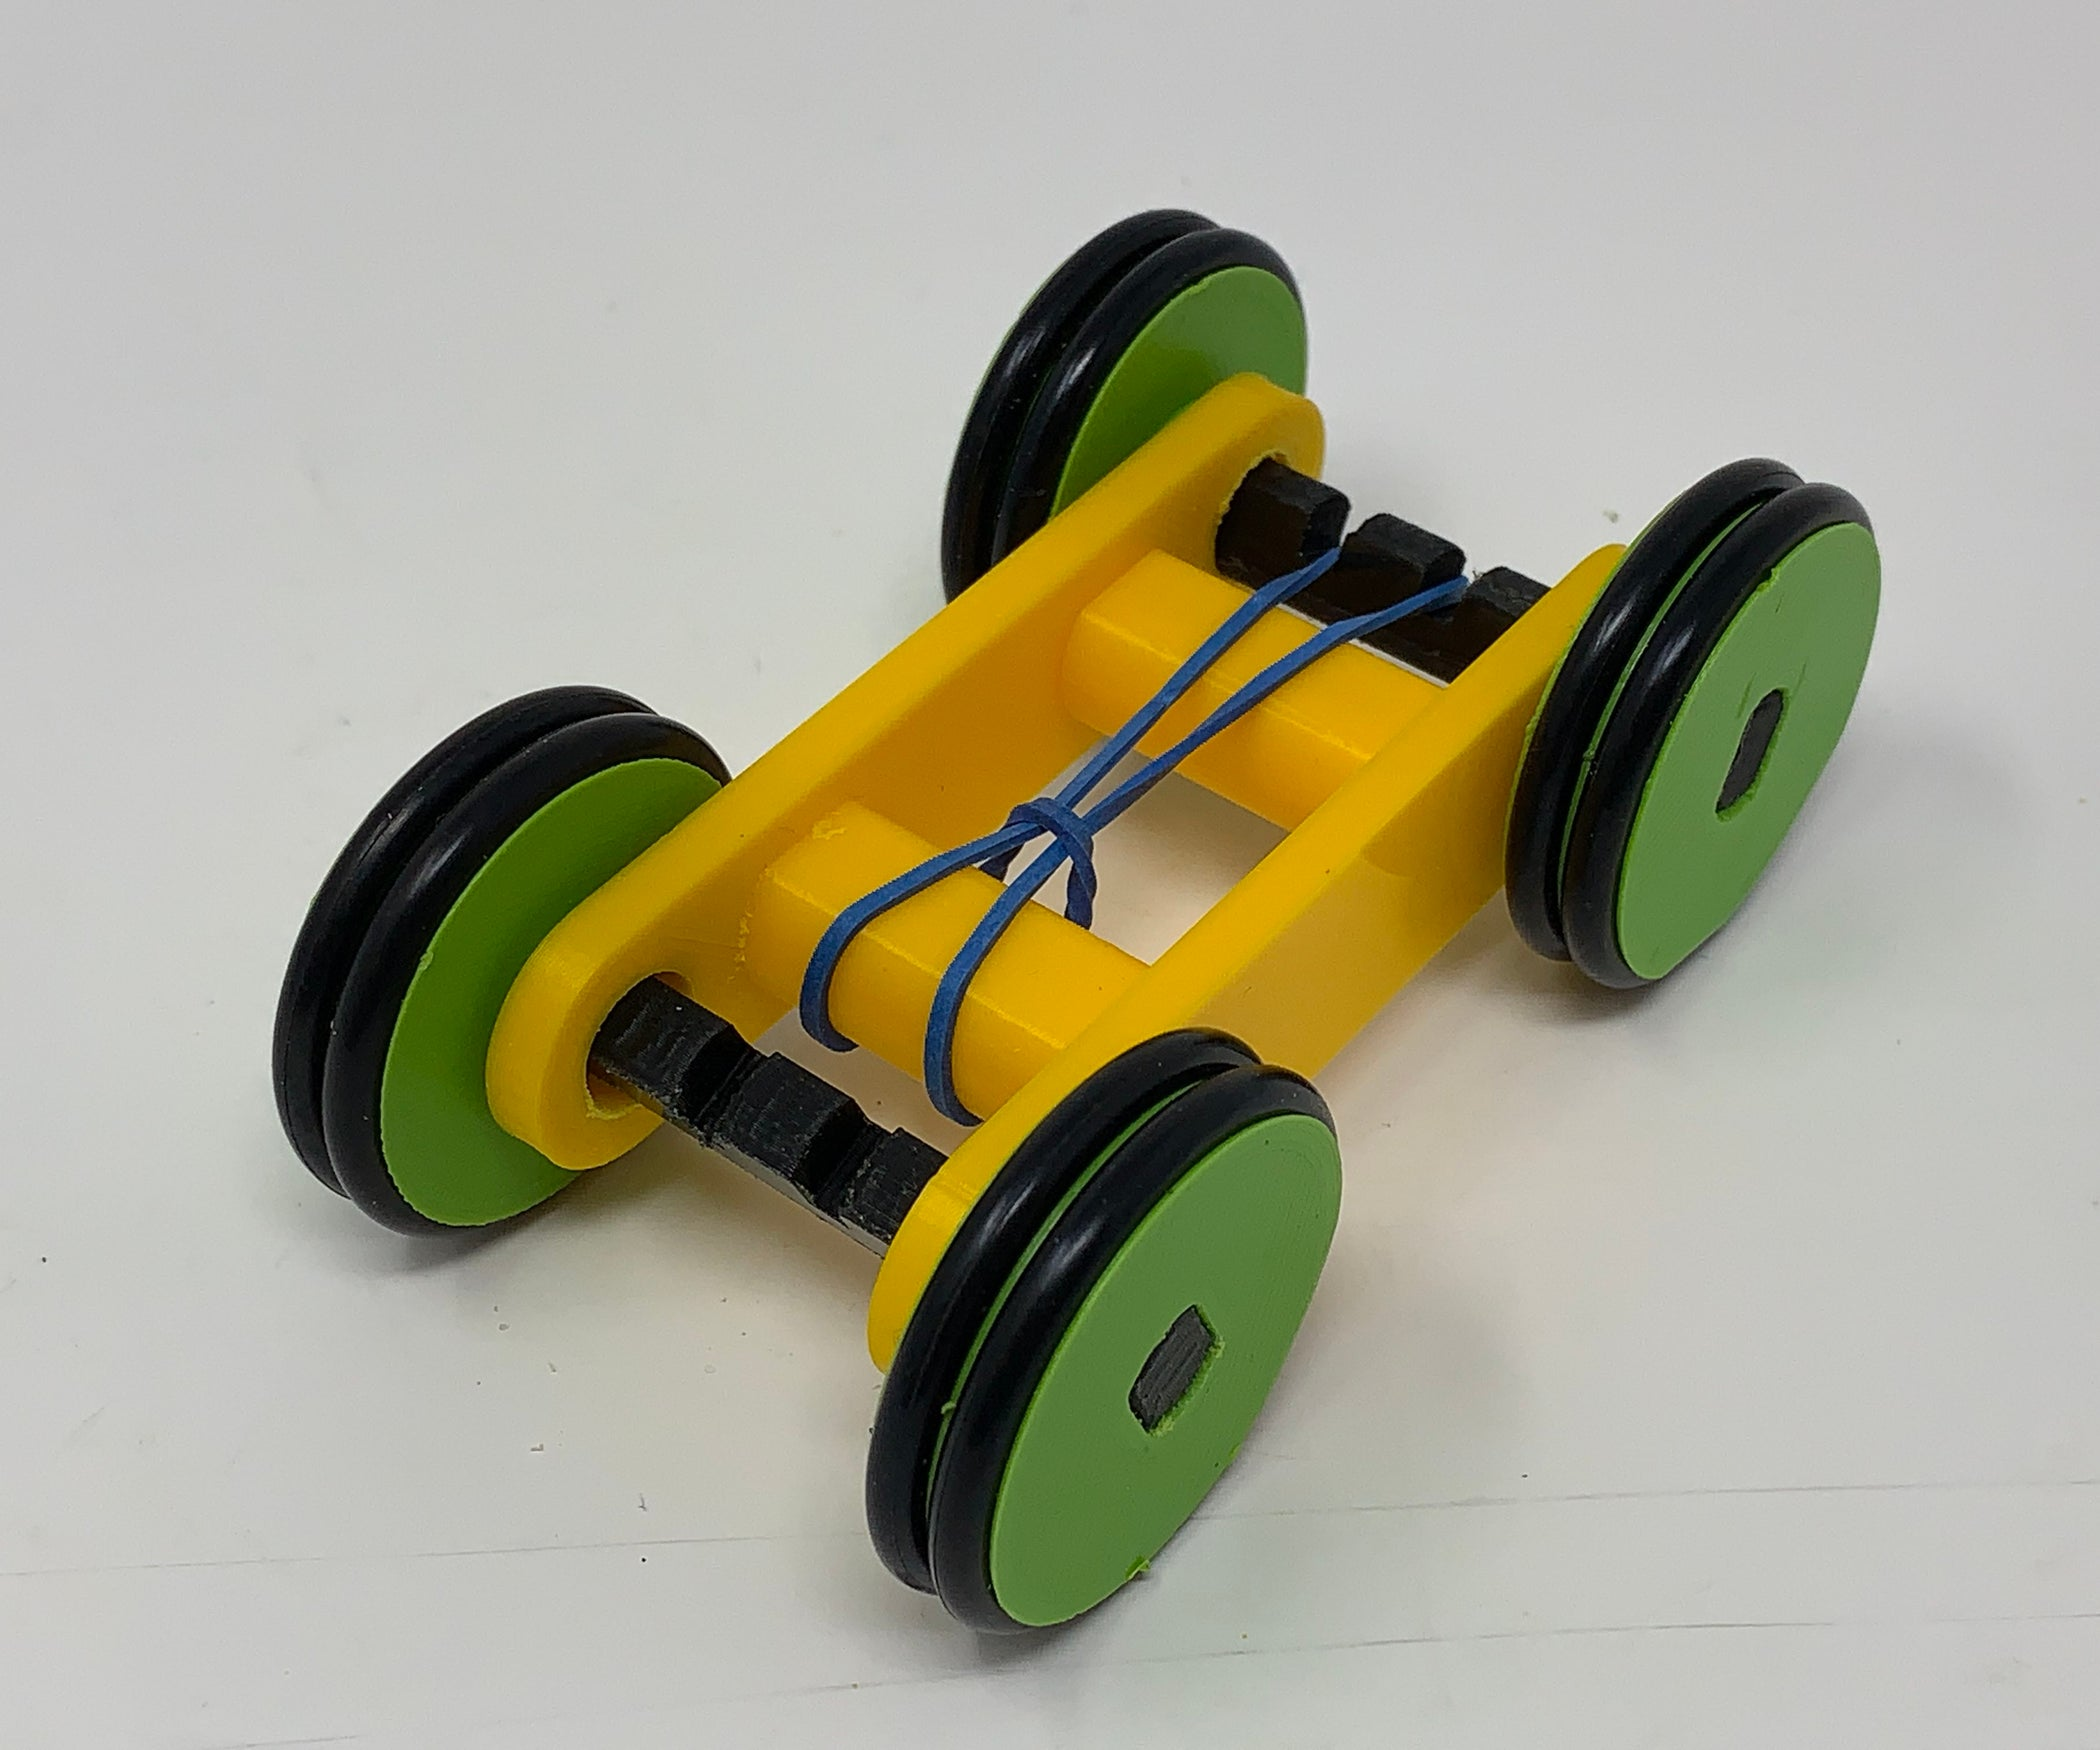 Designing A Simple 3D Printed Rubber Band Car Using